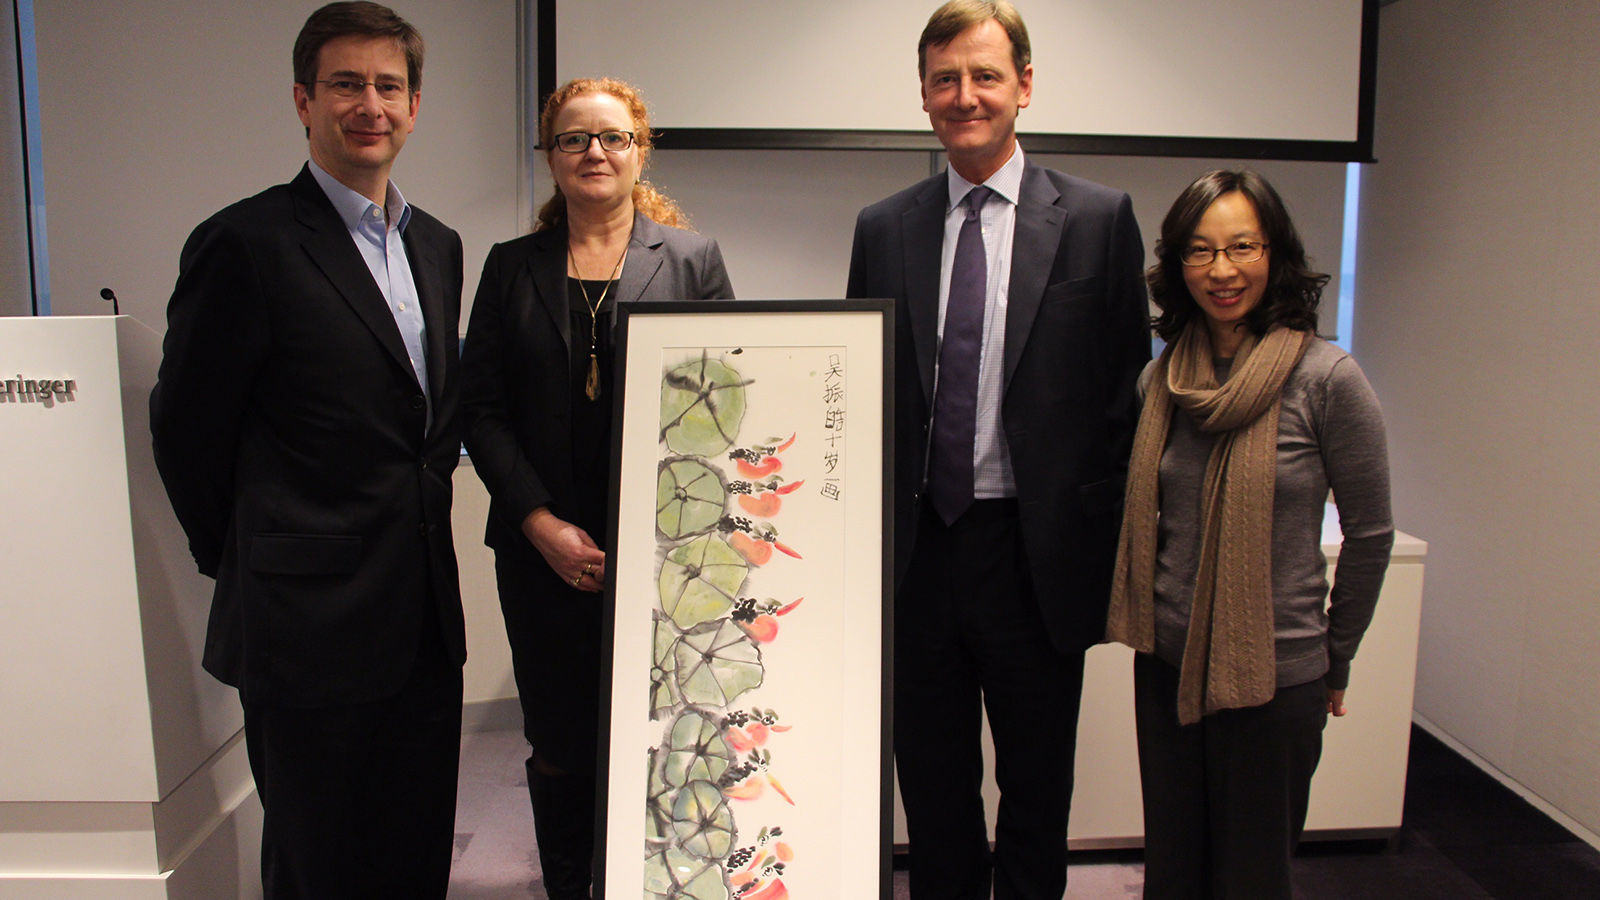 Freshfields Partner William Robinson and Asia Regional Managing Partner Robert Ashworth, along with OneSky's Chief Development Officer Natalie Campion, and Carmen Lau, Director of Development Asia celebrating Freshfields Bruckhaus Deringer's 10-year support of OneSky's work.